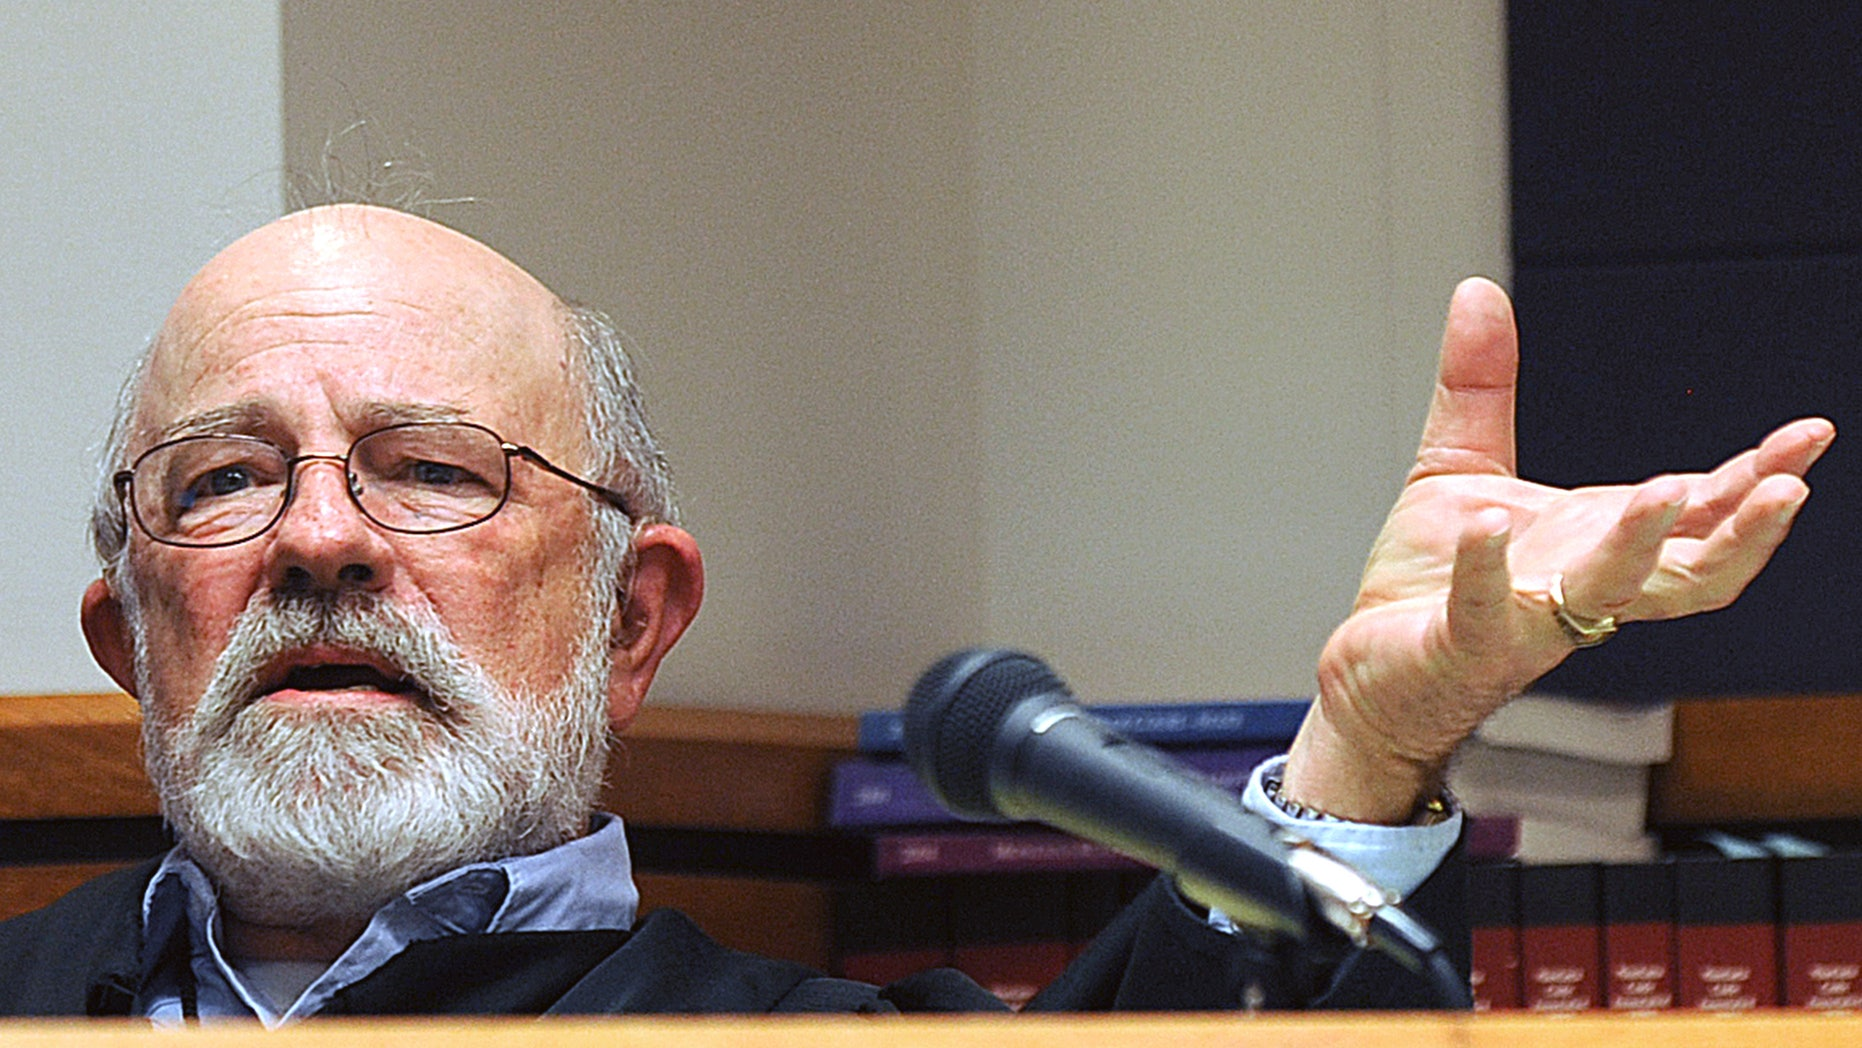 In this undated file photo, District Judge G. Todd Baugh presides at a hearing in Great Falls, Mont.